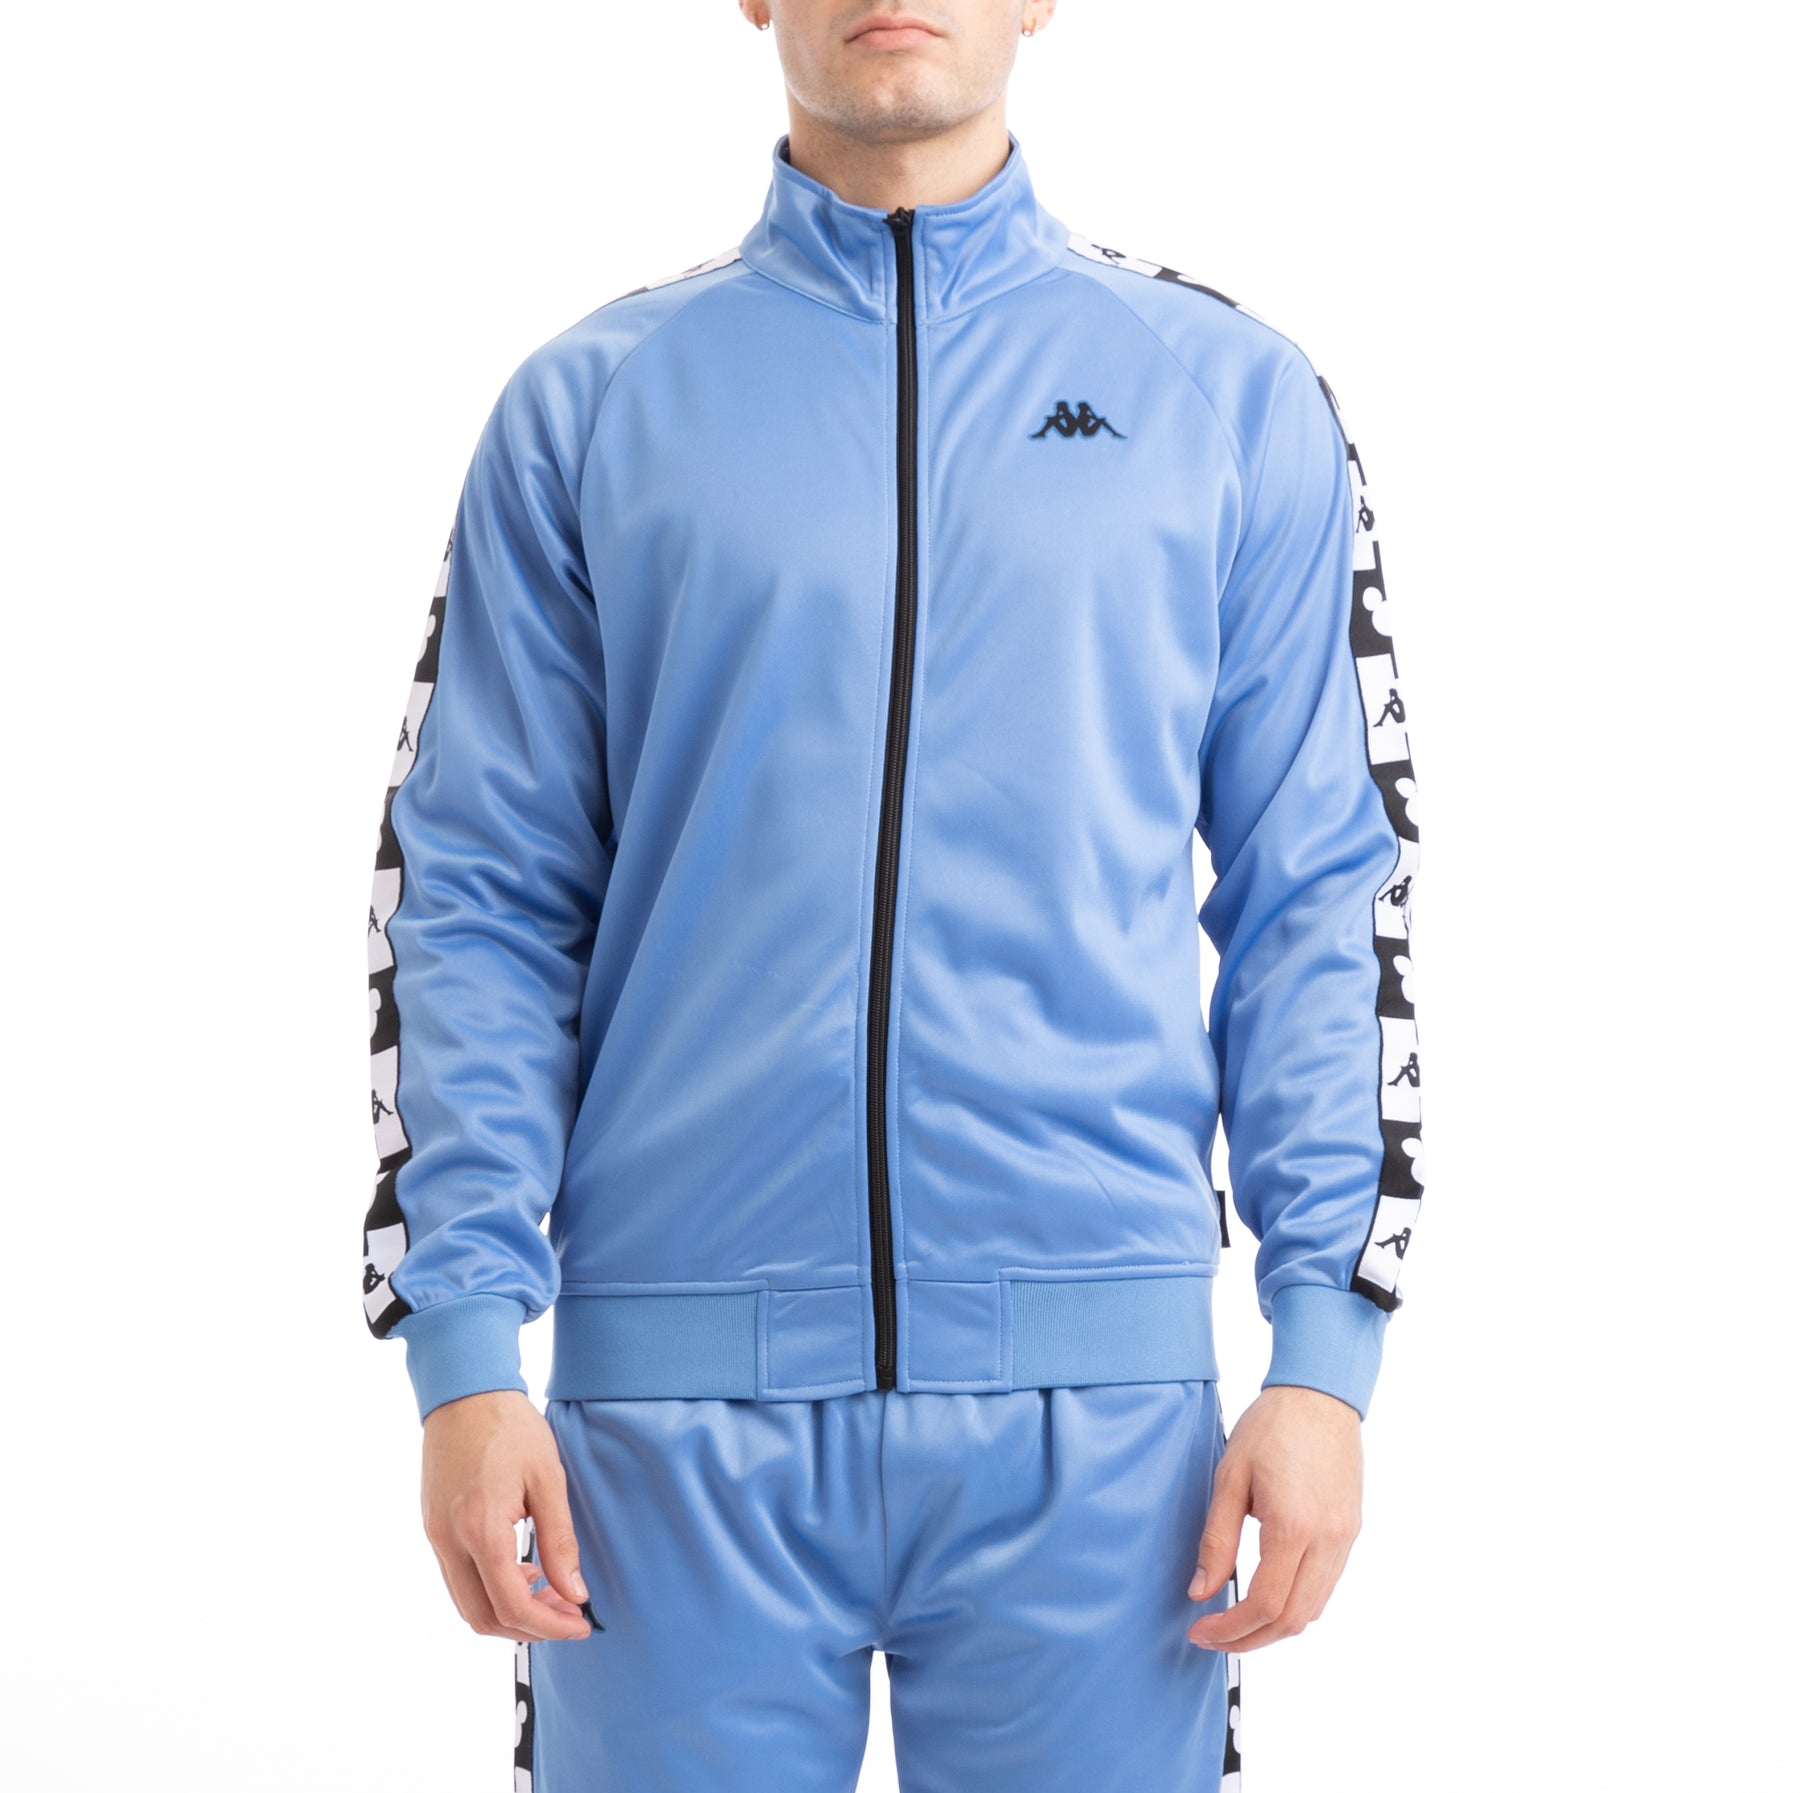 be5c6139fe Authentic Anne Disney Blue Pacific Black Track Jacket – Kappa USA